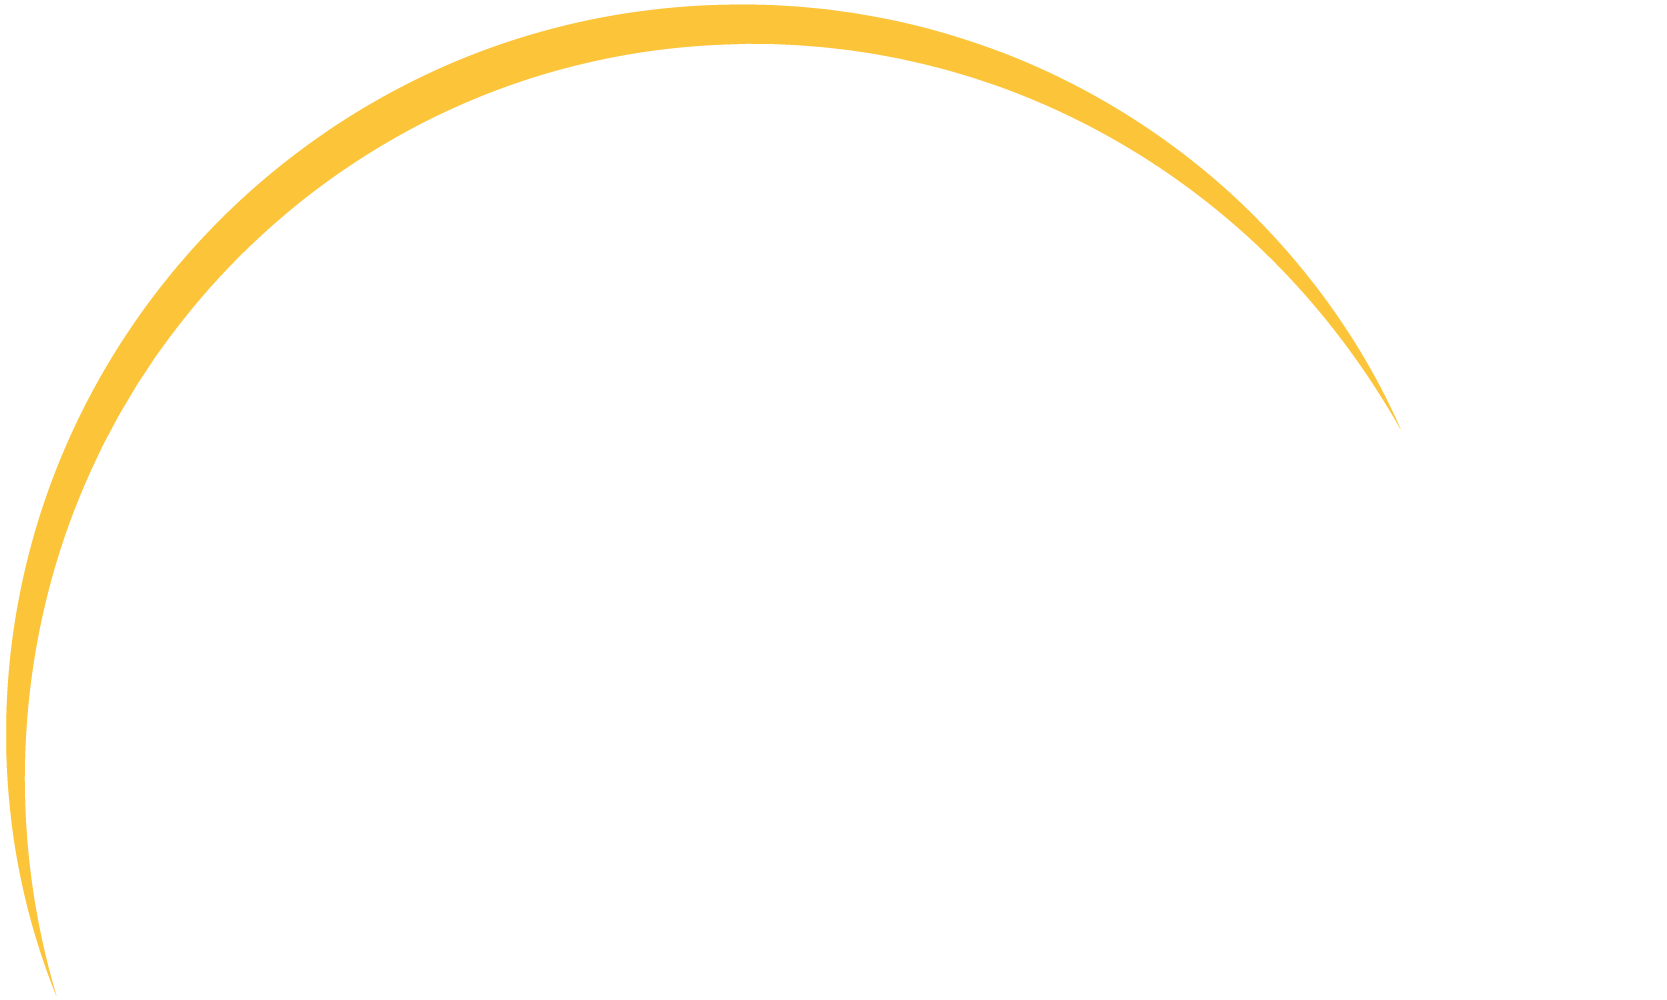 Eclipse Property Management